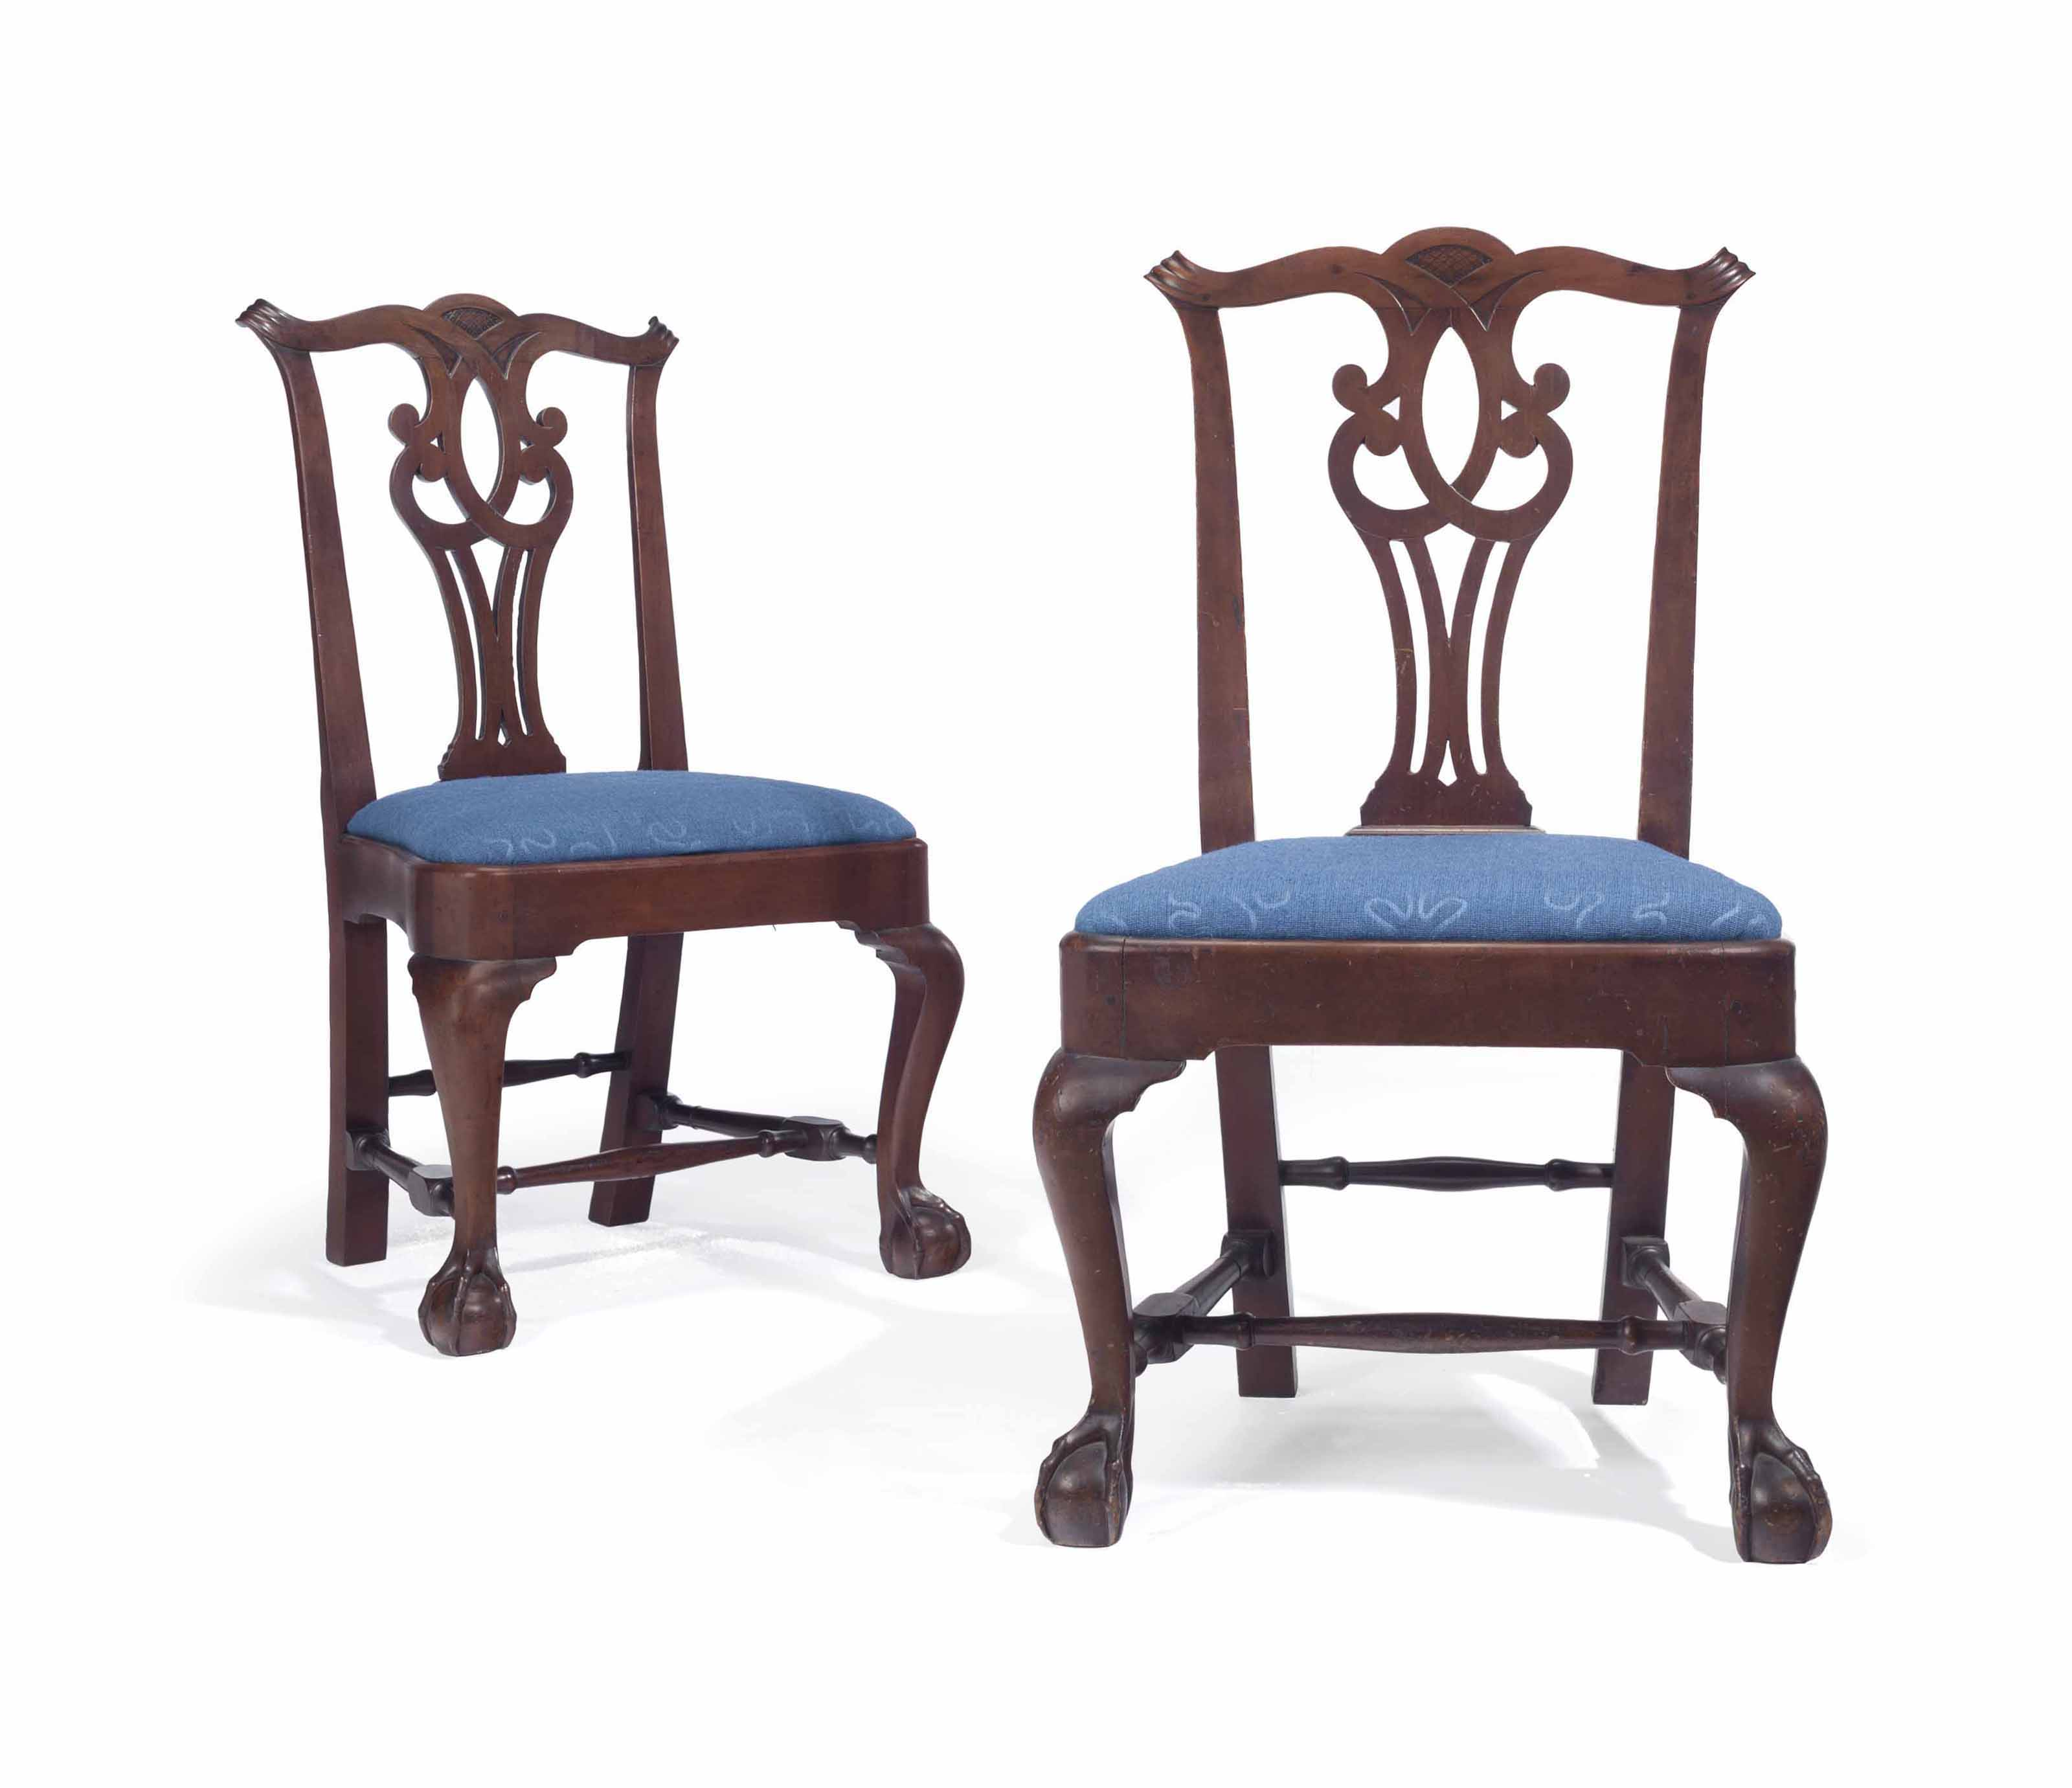 THE JOHN TOWNSEND PAIR OF CHIPPENDALE CARVED MAHOGANY SIDE CHAIRS